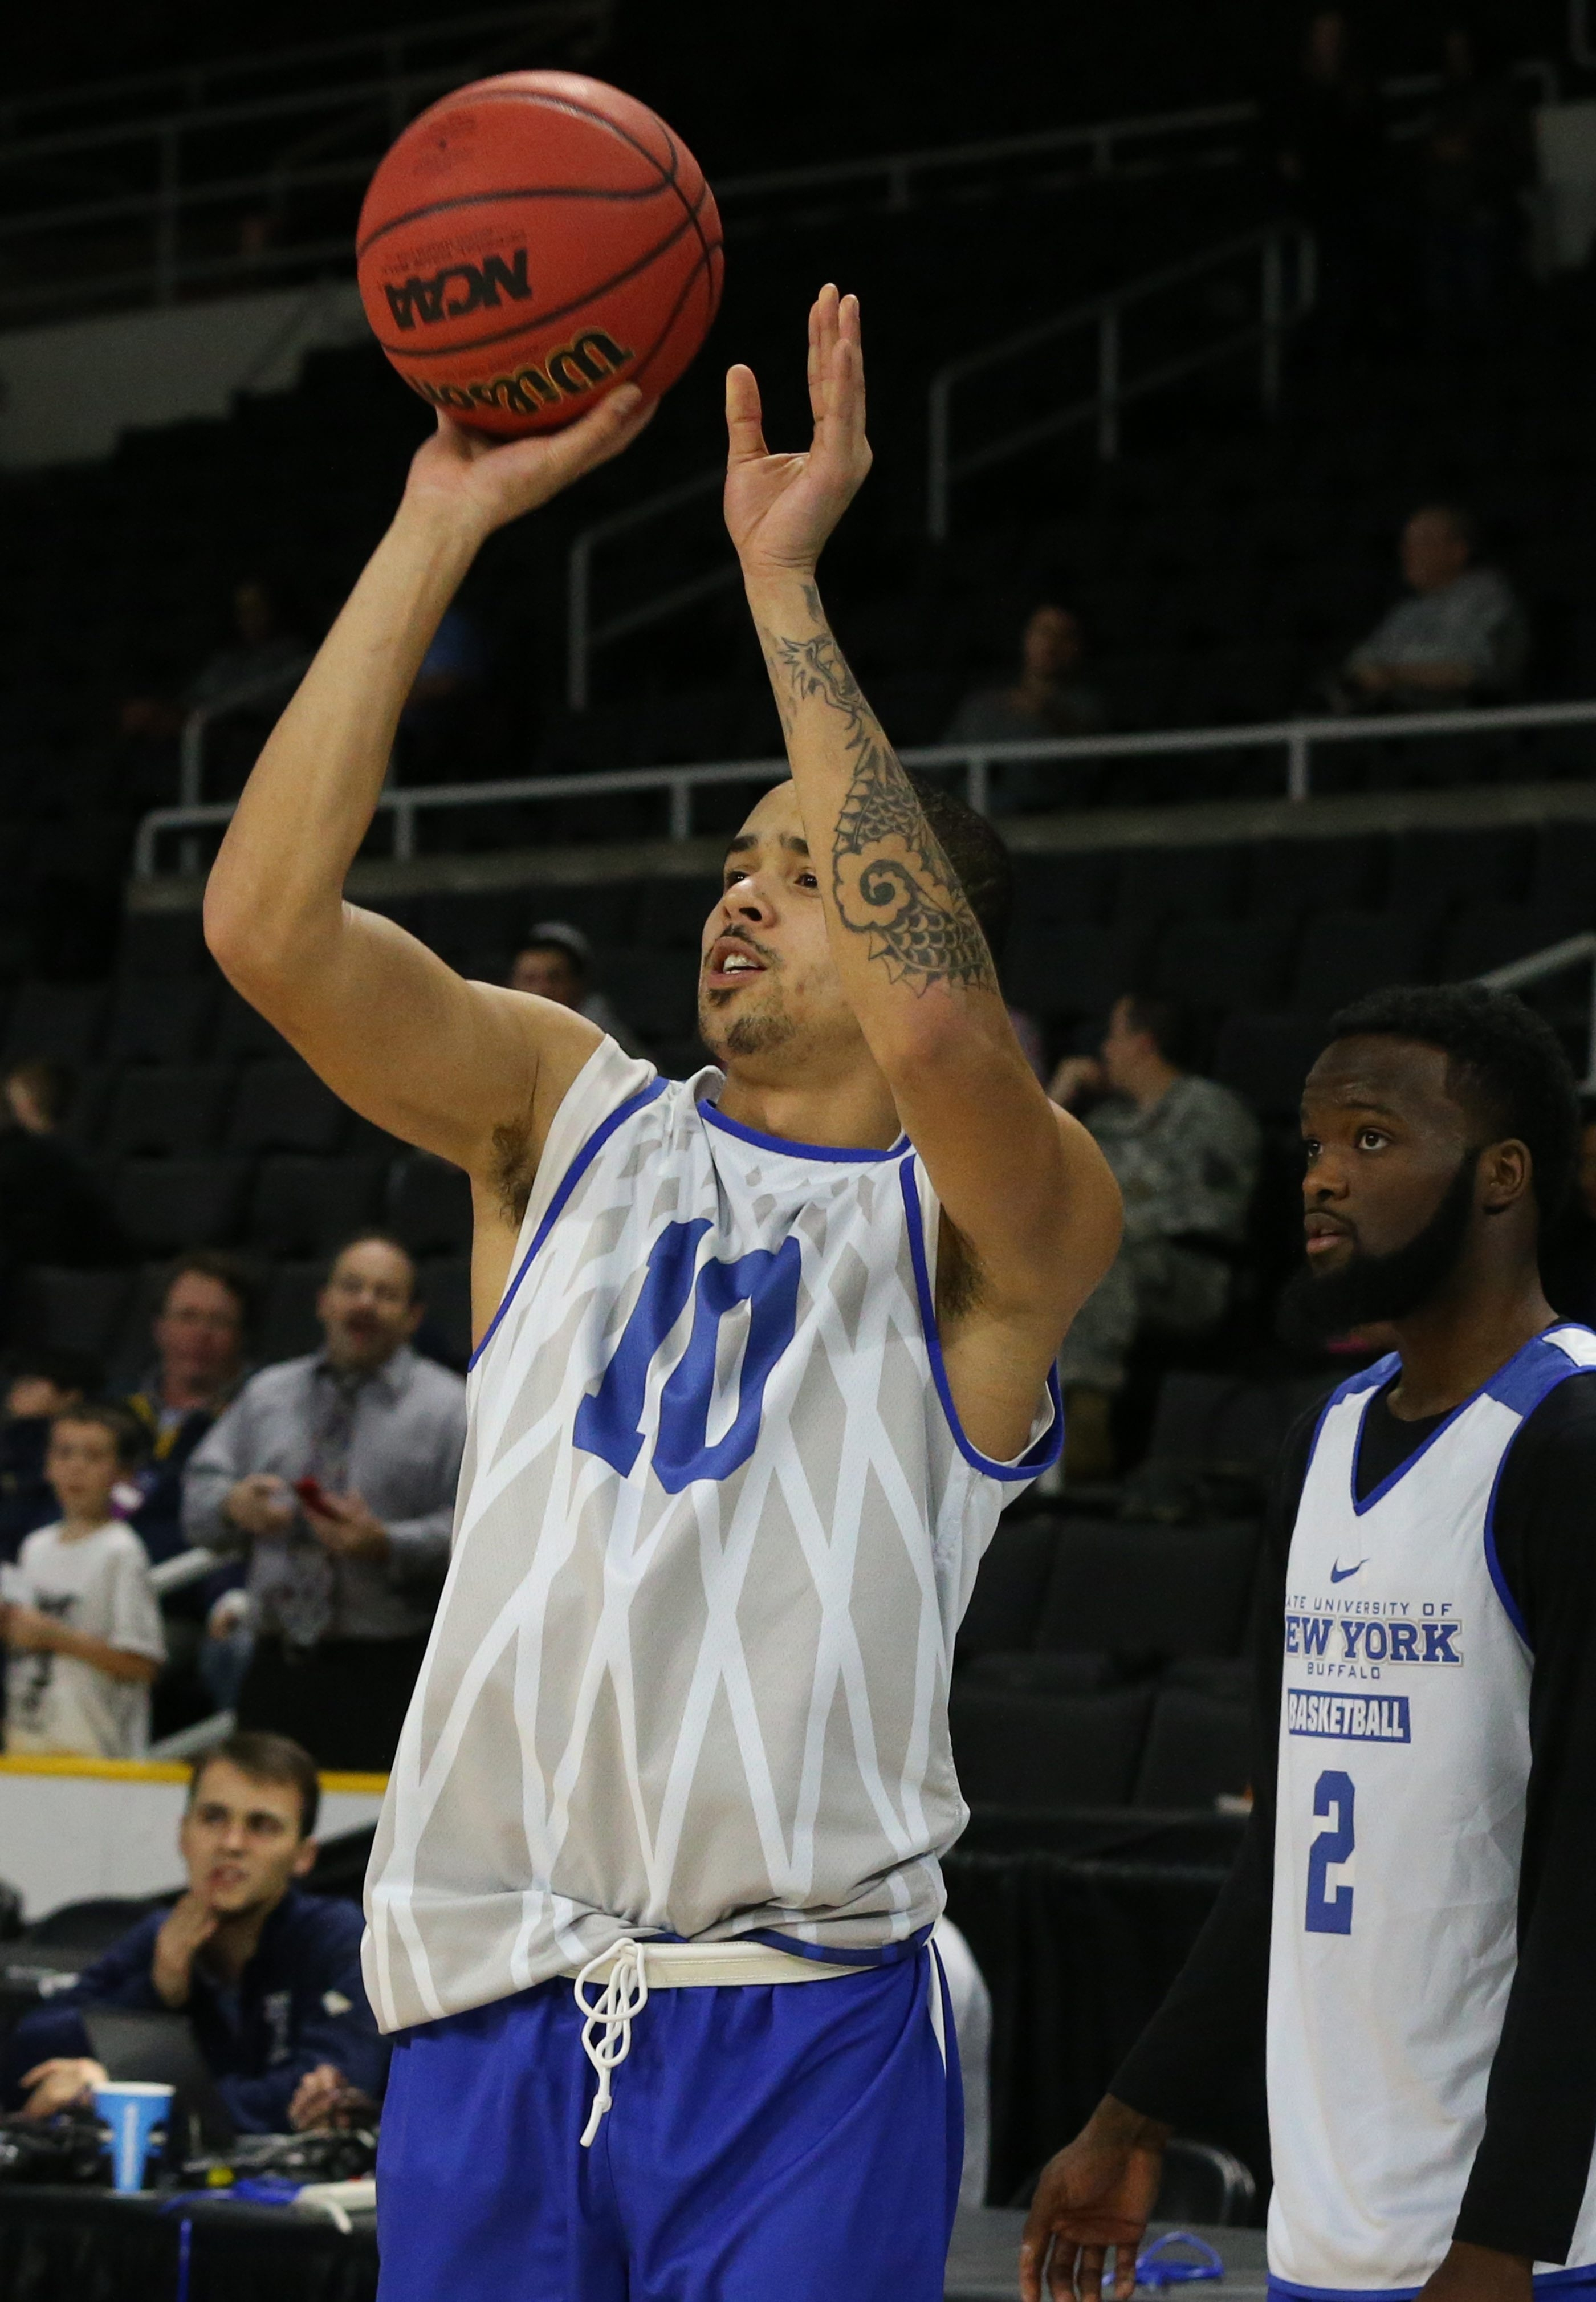 UB may need a big game from three-point shooters such as Jarryn Skeete to upset Miami in the NCAA Tournament on Thursday.